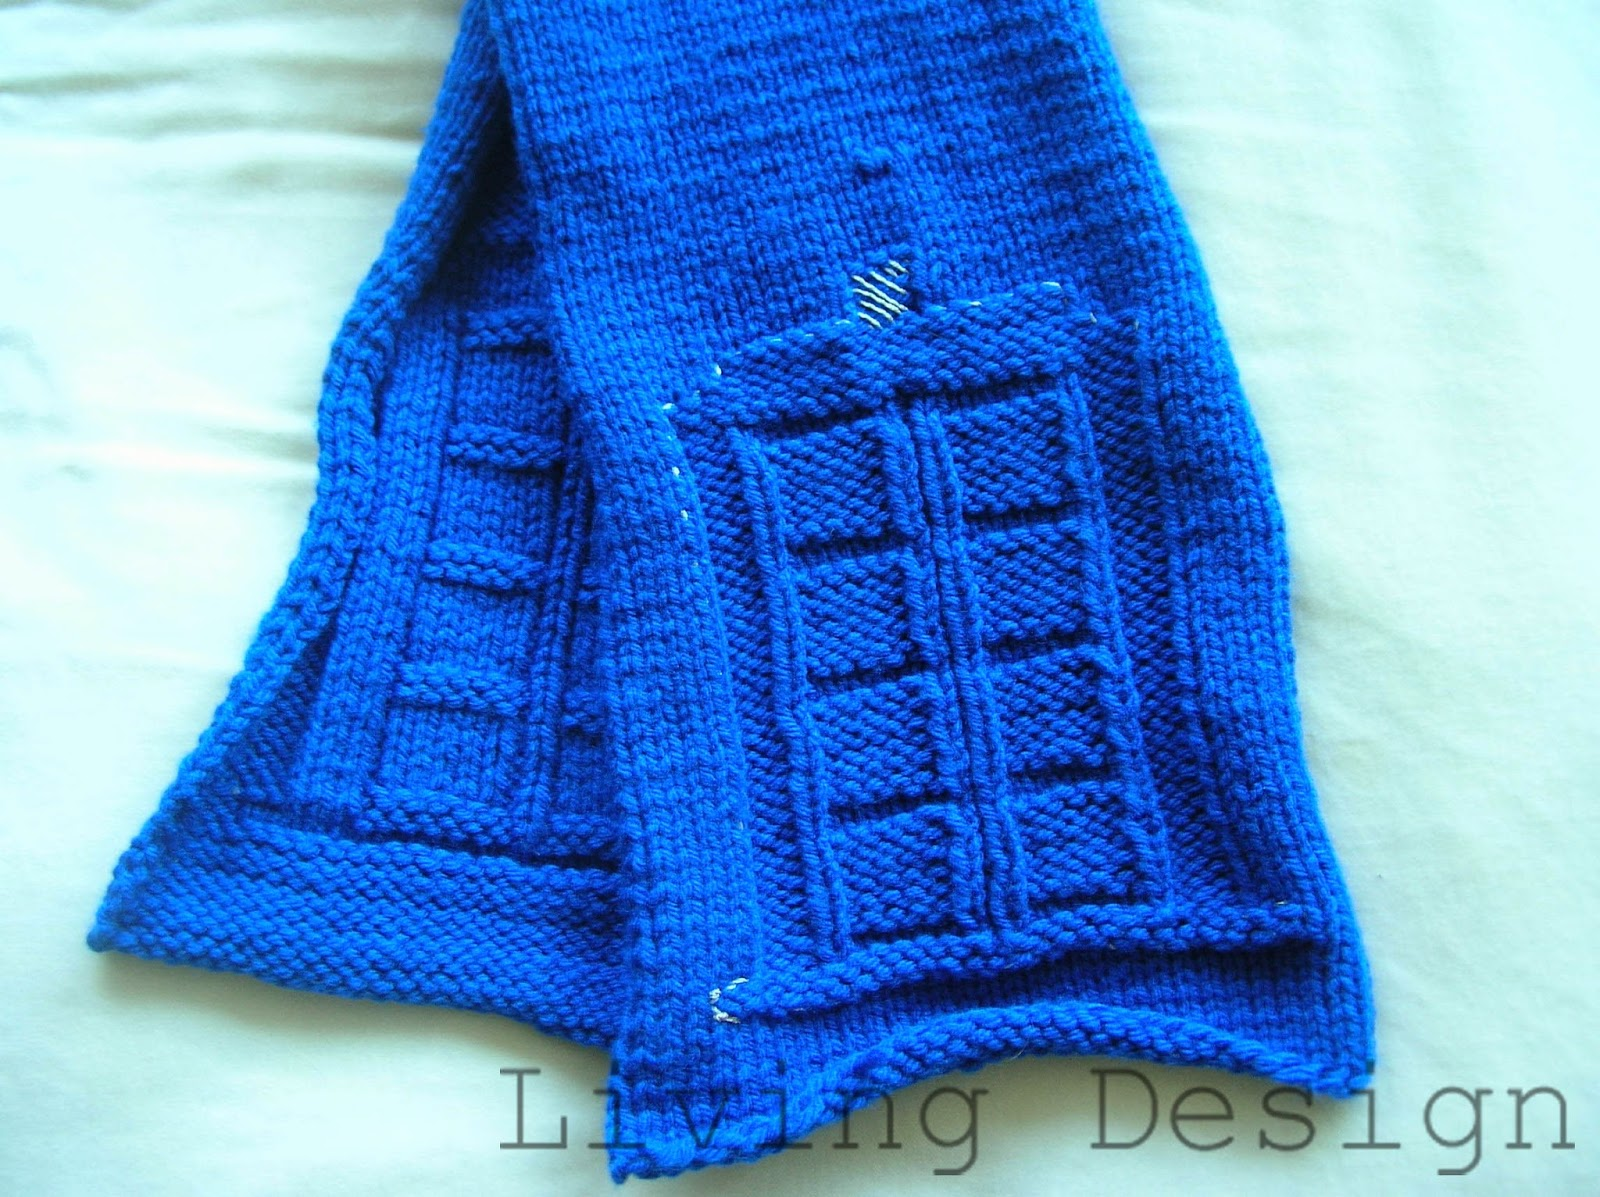 Living Design: TARDIS Scarf - Handmade Holiday Gifts